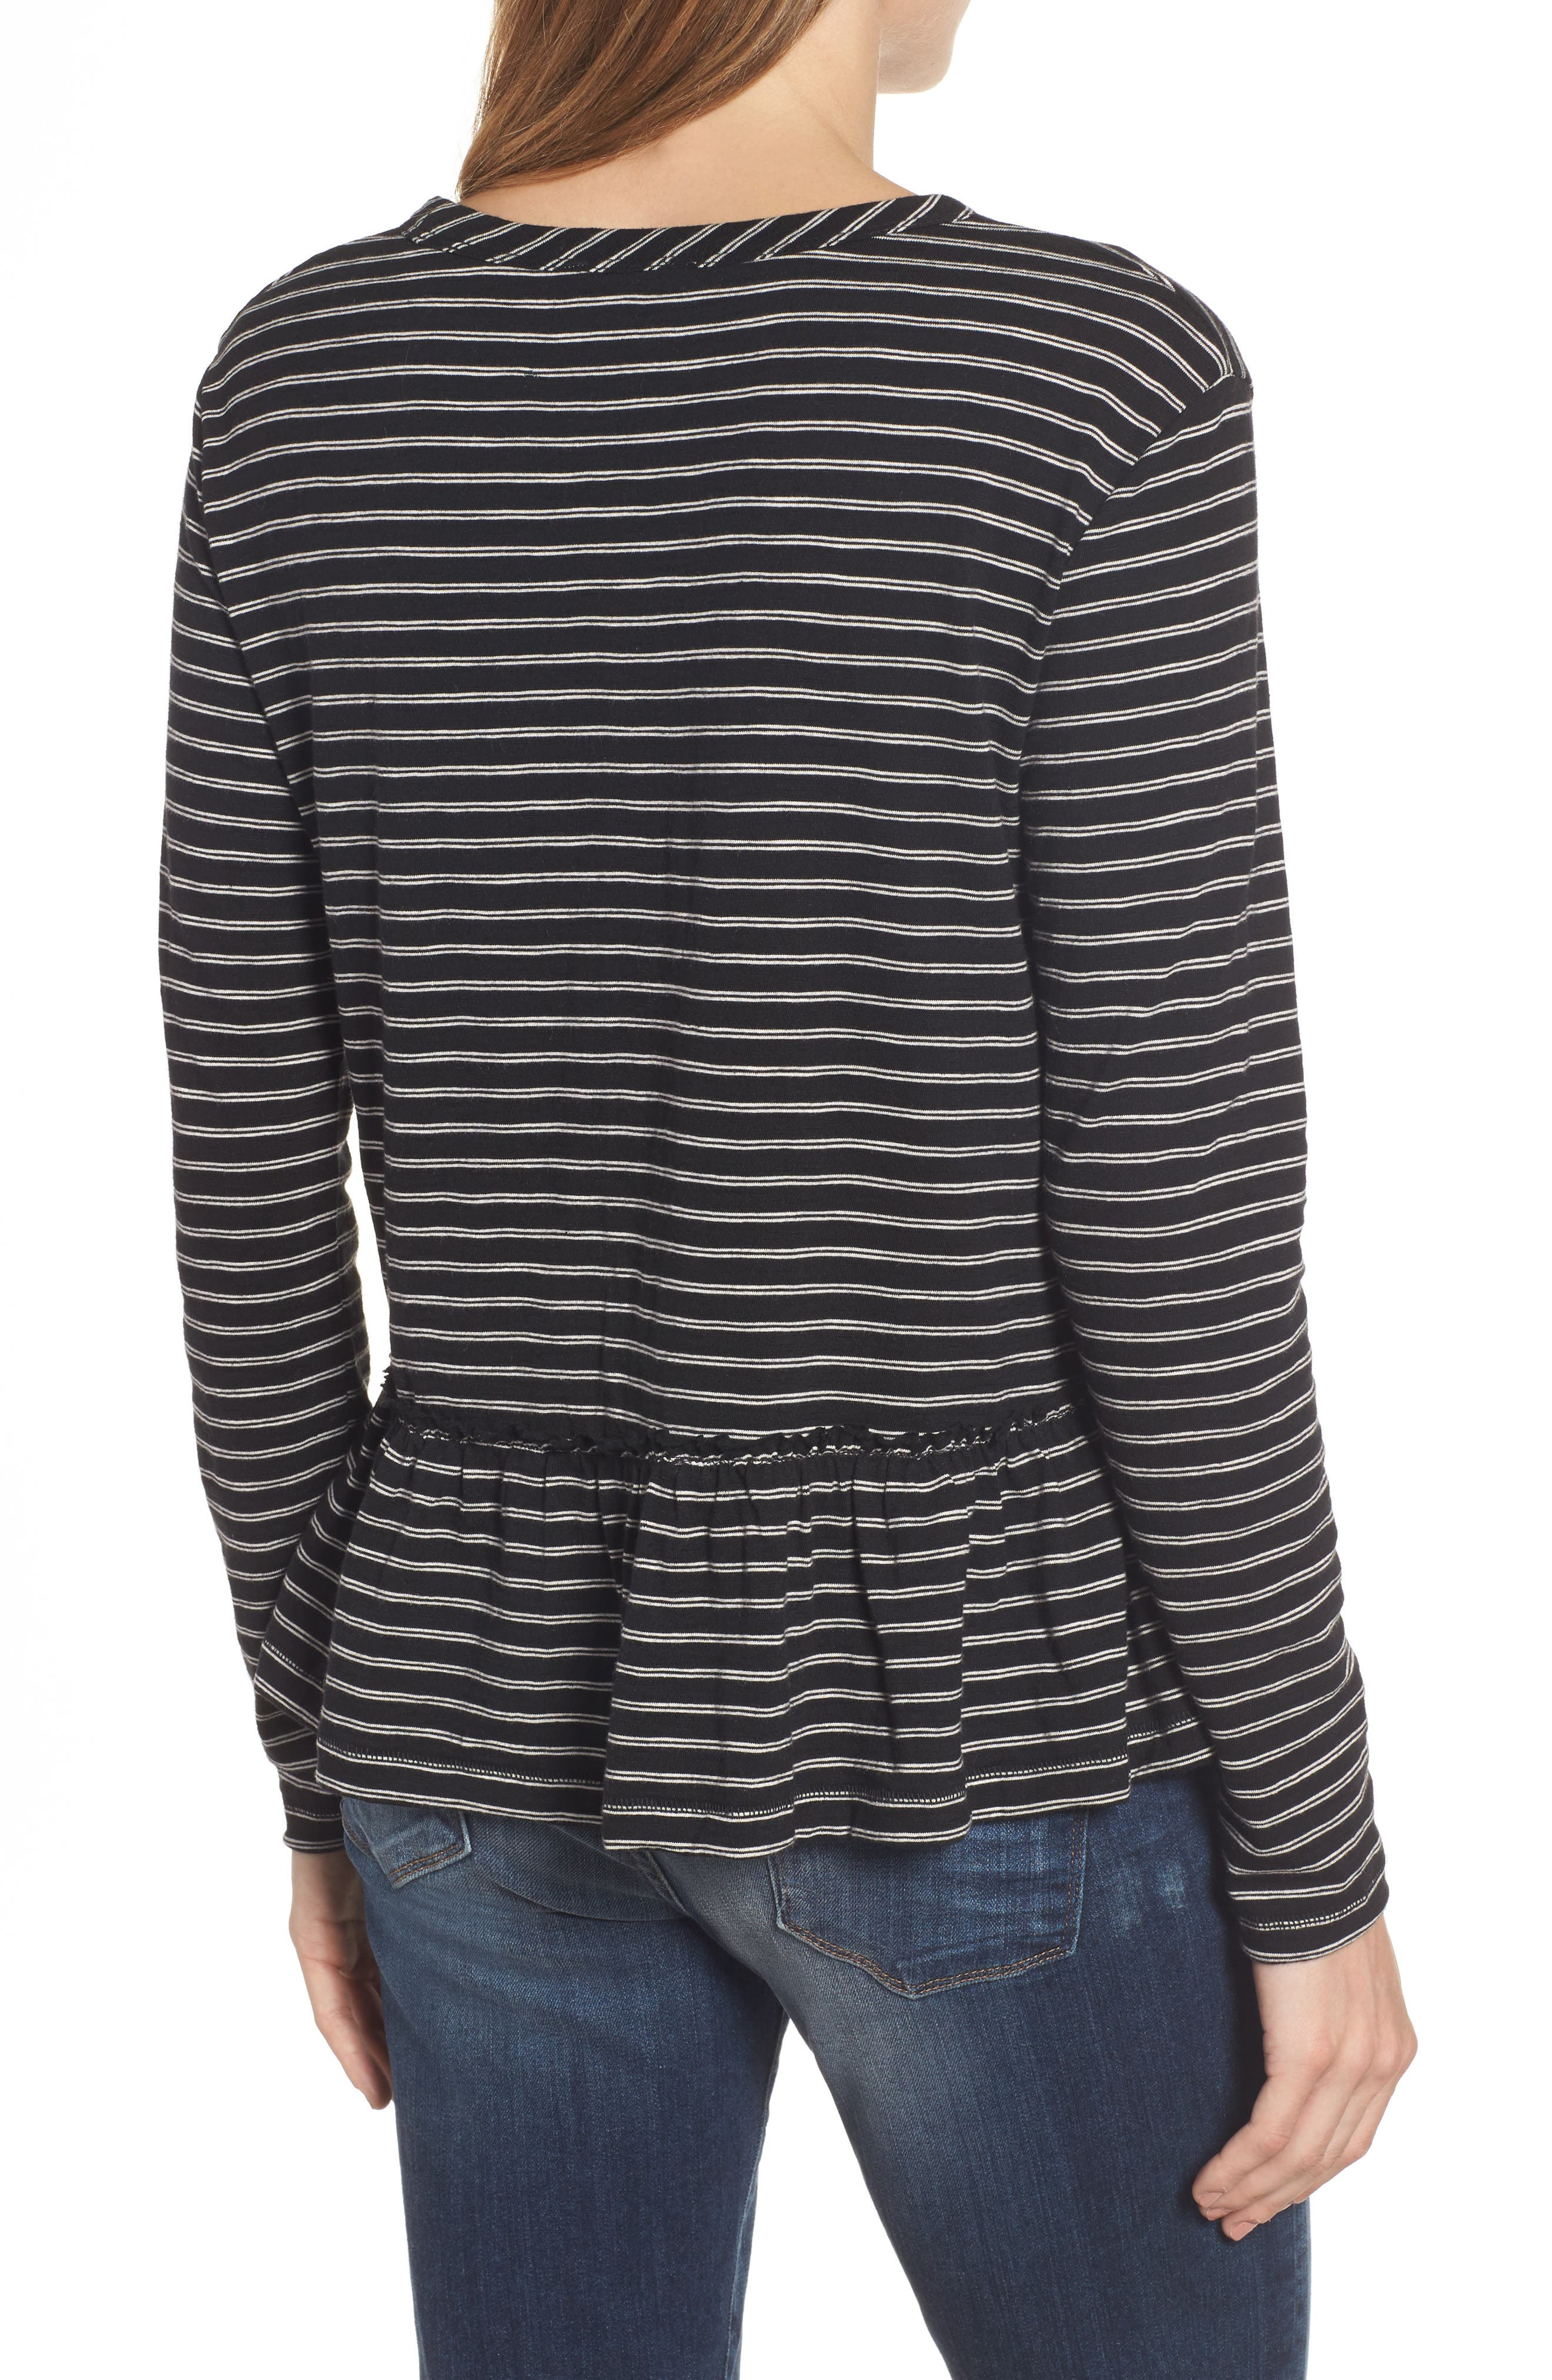 Peplum Tee,                             Alternate thumbnail 2, color,                             Black- Beige Stripe